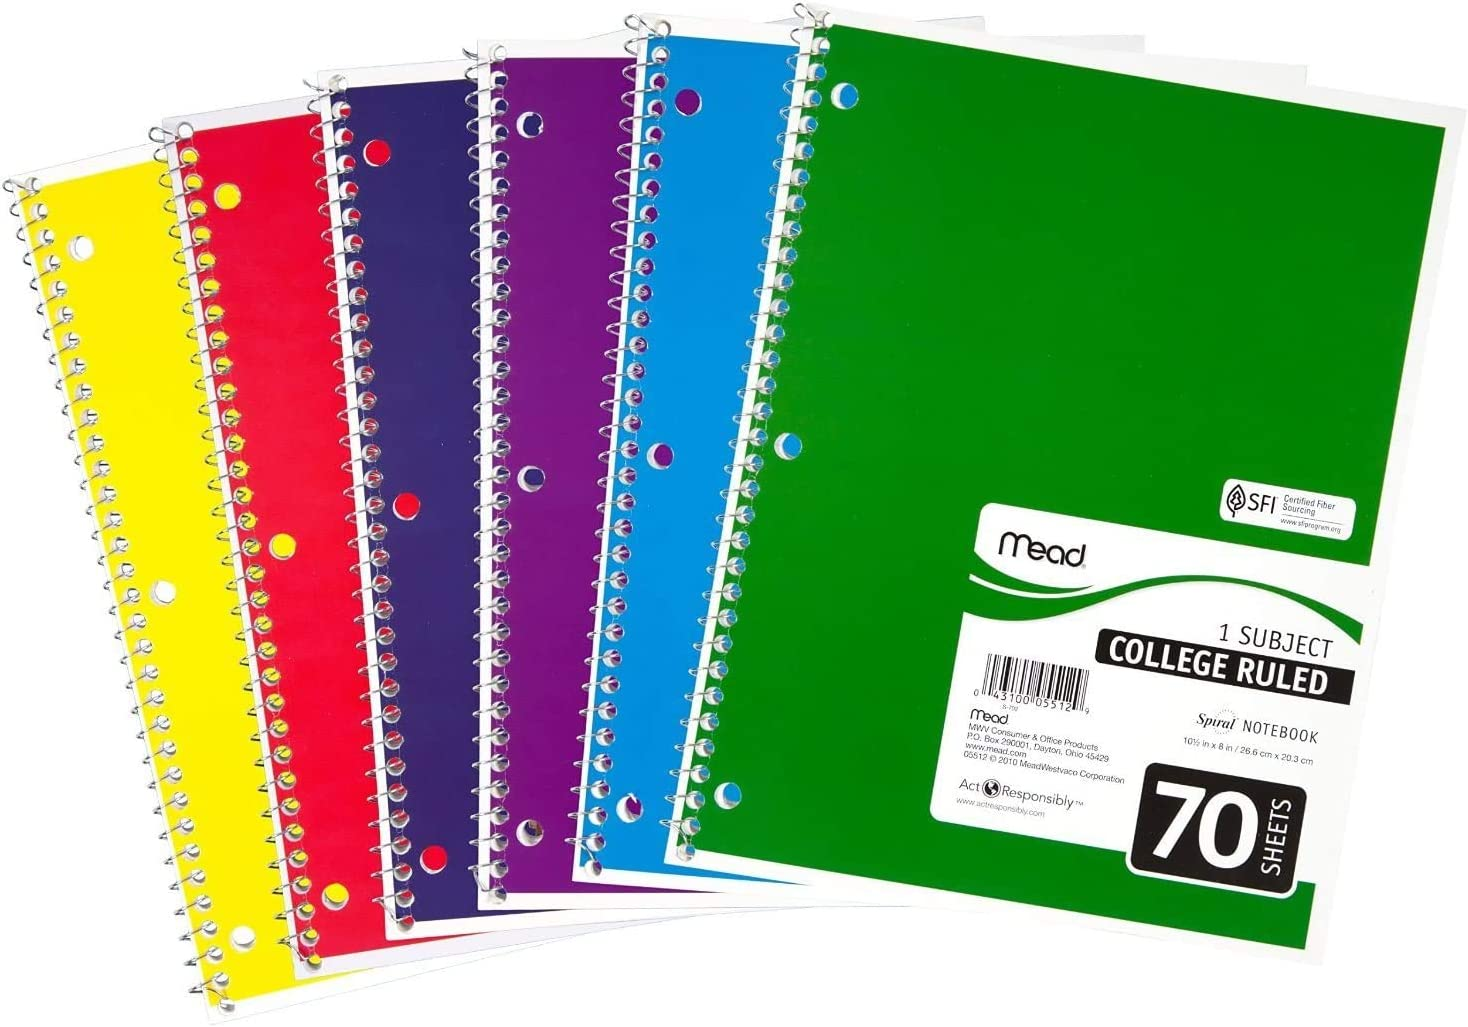 """Mead Spiral Notebooks 1 Subject 10 1//2 x 8/"""" 70 Sheets 73065 Lined Paper Assorted Colors College Ruled Paper Assorted Colors, 0 1 Pack of 6 6 Pack Colored Note Books"""